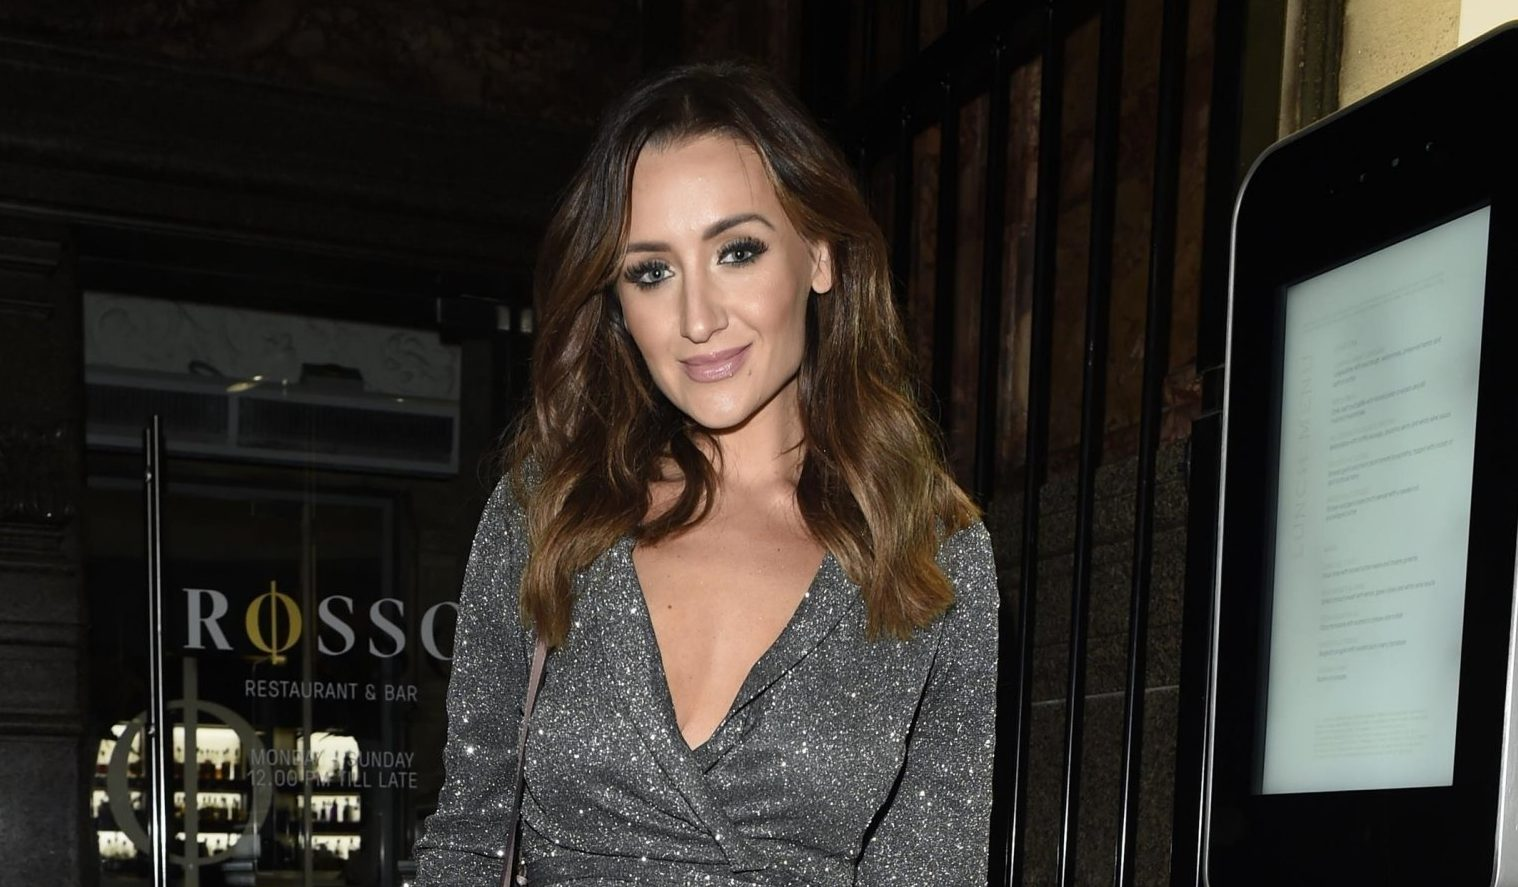 BGUK_1449093 - Manchester, UNITED KINGDOM - ***STRICTLY NO MAIL ON LINE USAGE*** Former Coronation Street star Catherine Tyldelsey and her husband Tom Pitford enjoy a date night at Rosso Restaurant in Manchester were they had there first ever date. Pictured: Catherine Tyldelsey BACKGRID UK 6 JANUARY 2019 BYLINE MUST READ: FARRELL / BACKGRID UK: +44 208 344 2007 / uksales@backgrid.com USA: +1 310 798 9111 / usasales@backgrid.com *UK Clients - Pictures Containing Children Please Pixelate Face Prior To Publication*